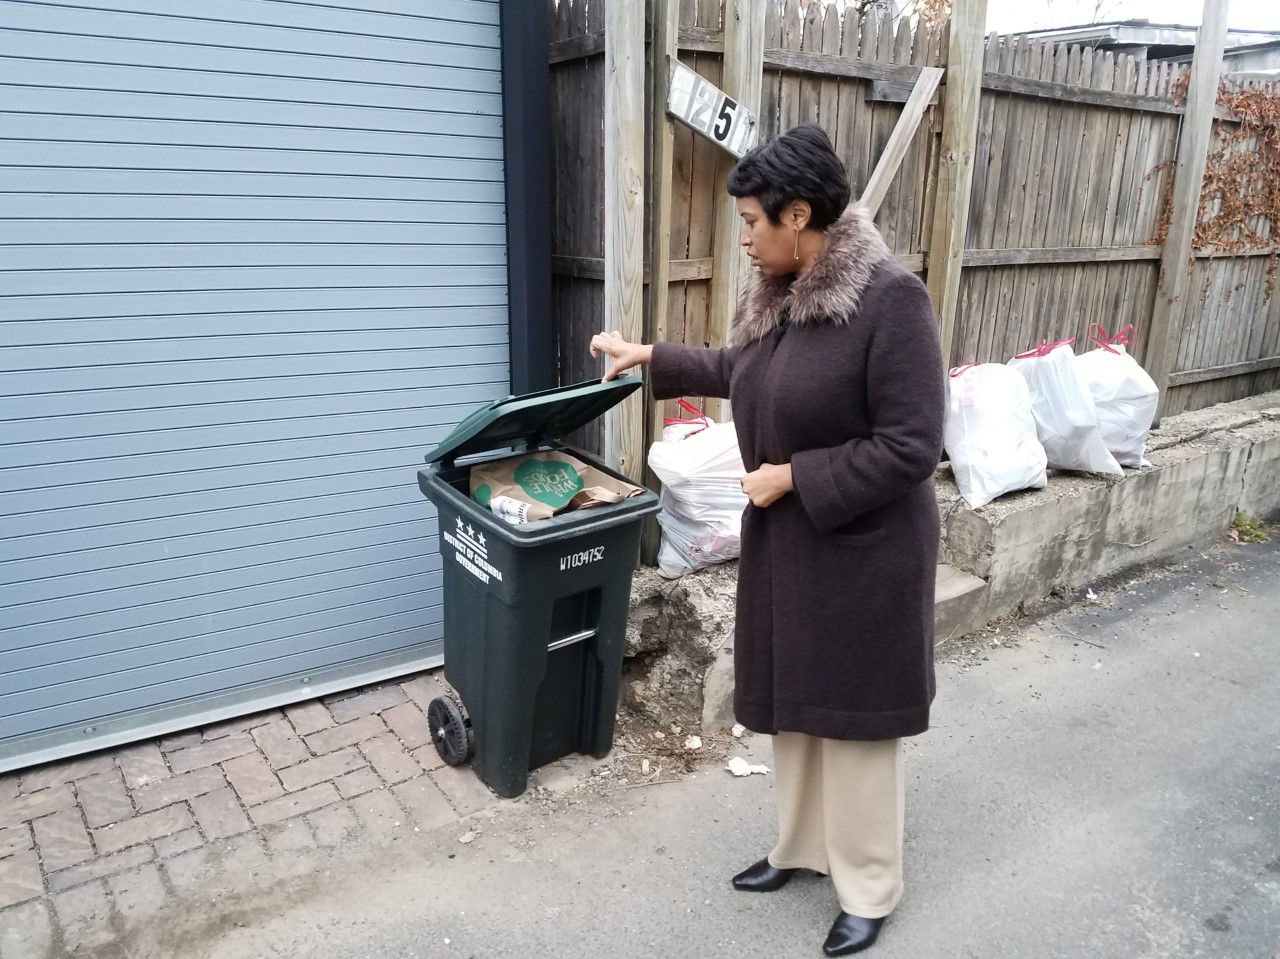 D.C. Mayor Muriel Bowser looks at a trash can in the District. (Courtesy Larry Janezich)